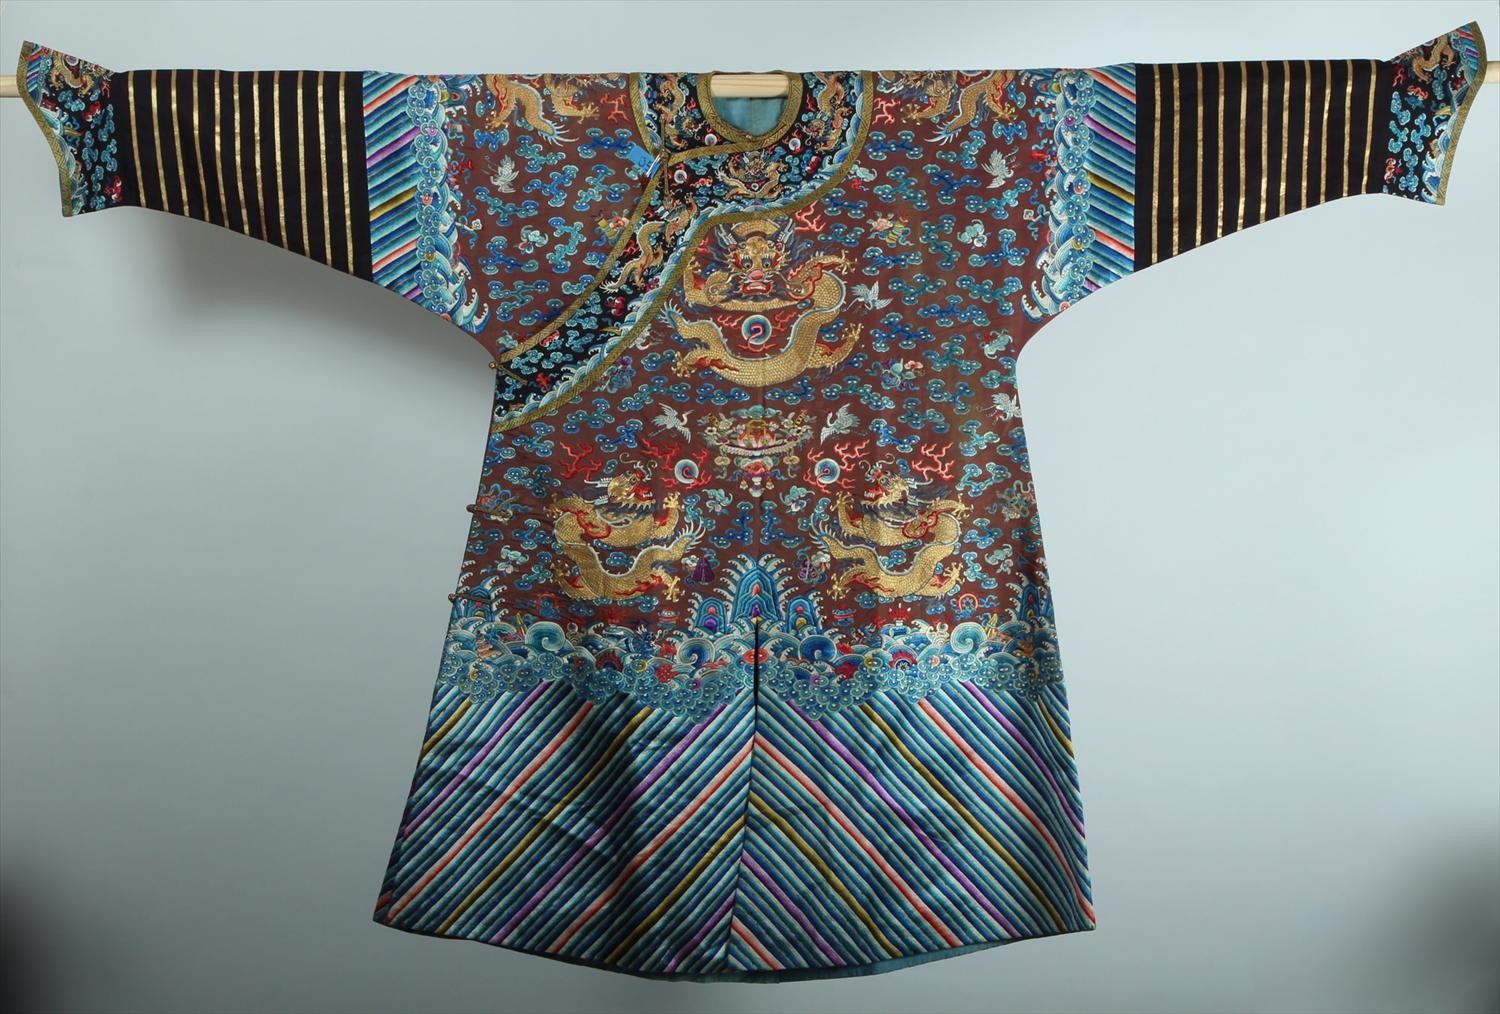 Chinese Brown Ground Silk Embroidered Court Robe 19th/20th Century Qing, New York Auction House, Houston Auction, Dallas Auction, San Antonio, Chinese Auciton, 中国艺术拍卖, 海外捡漏,缂丝,龙袍